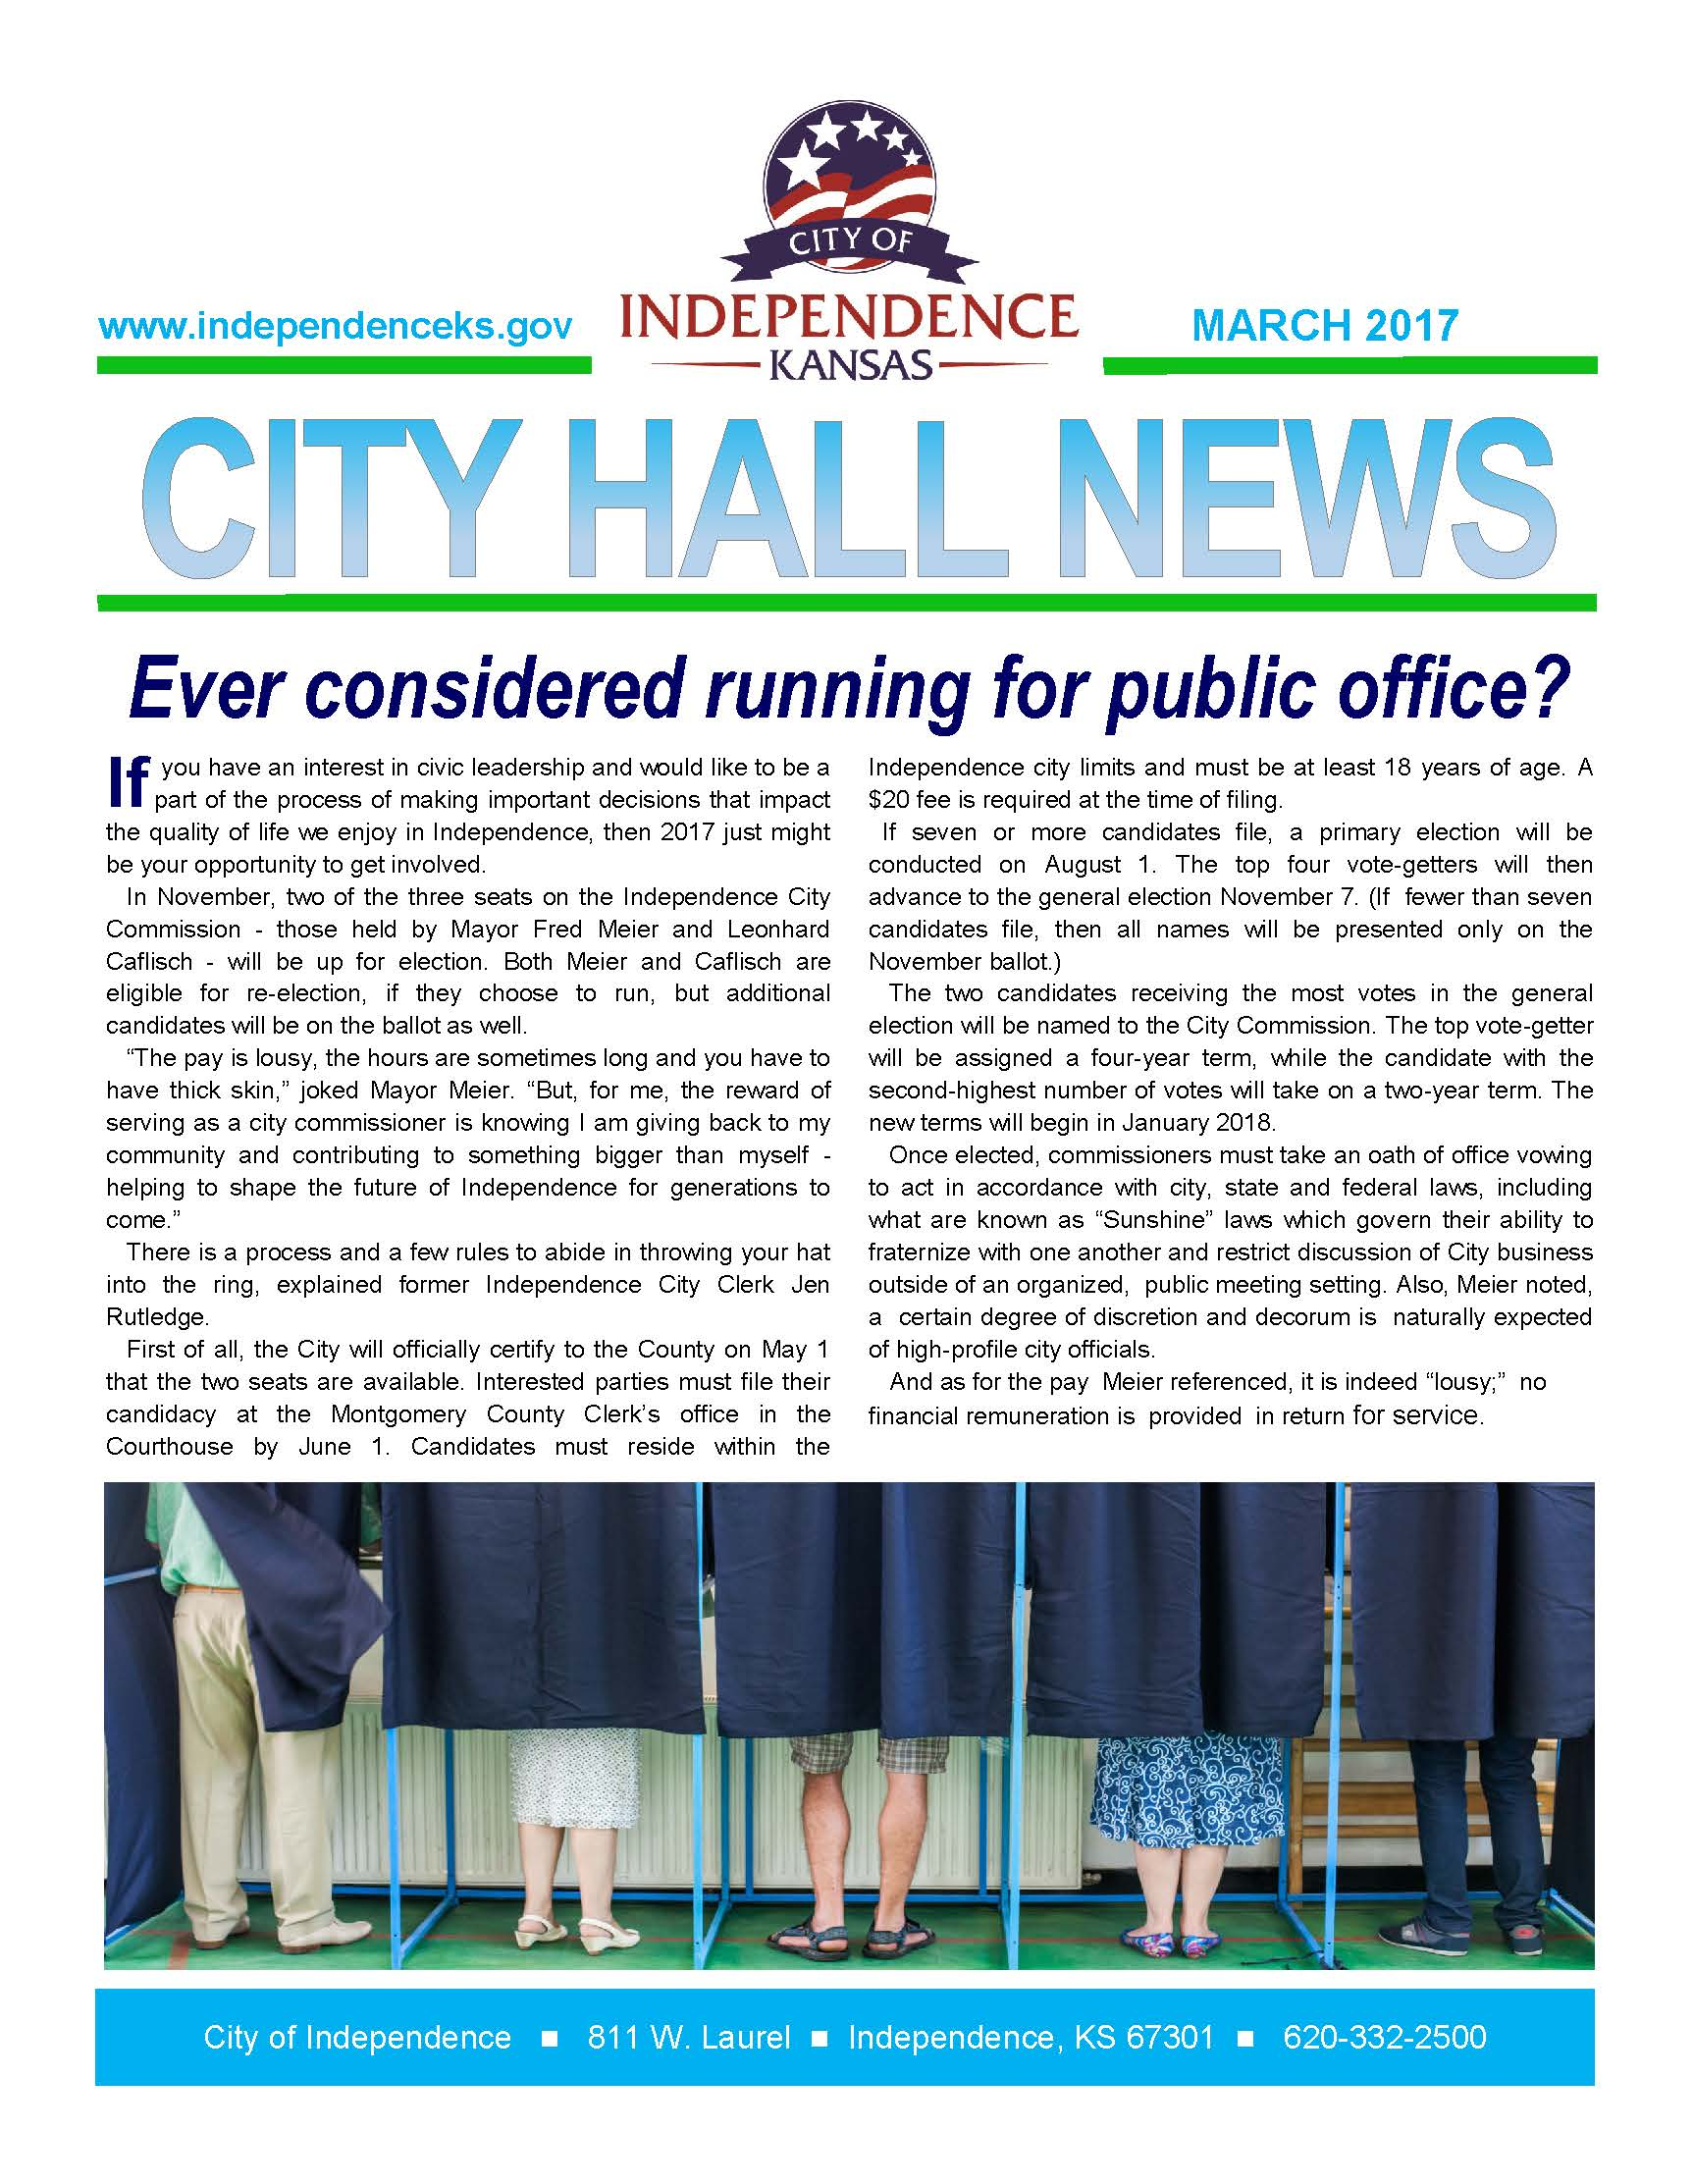 City of Independence March 2017 NewsletterFINAL_Page_1.jpg